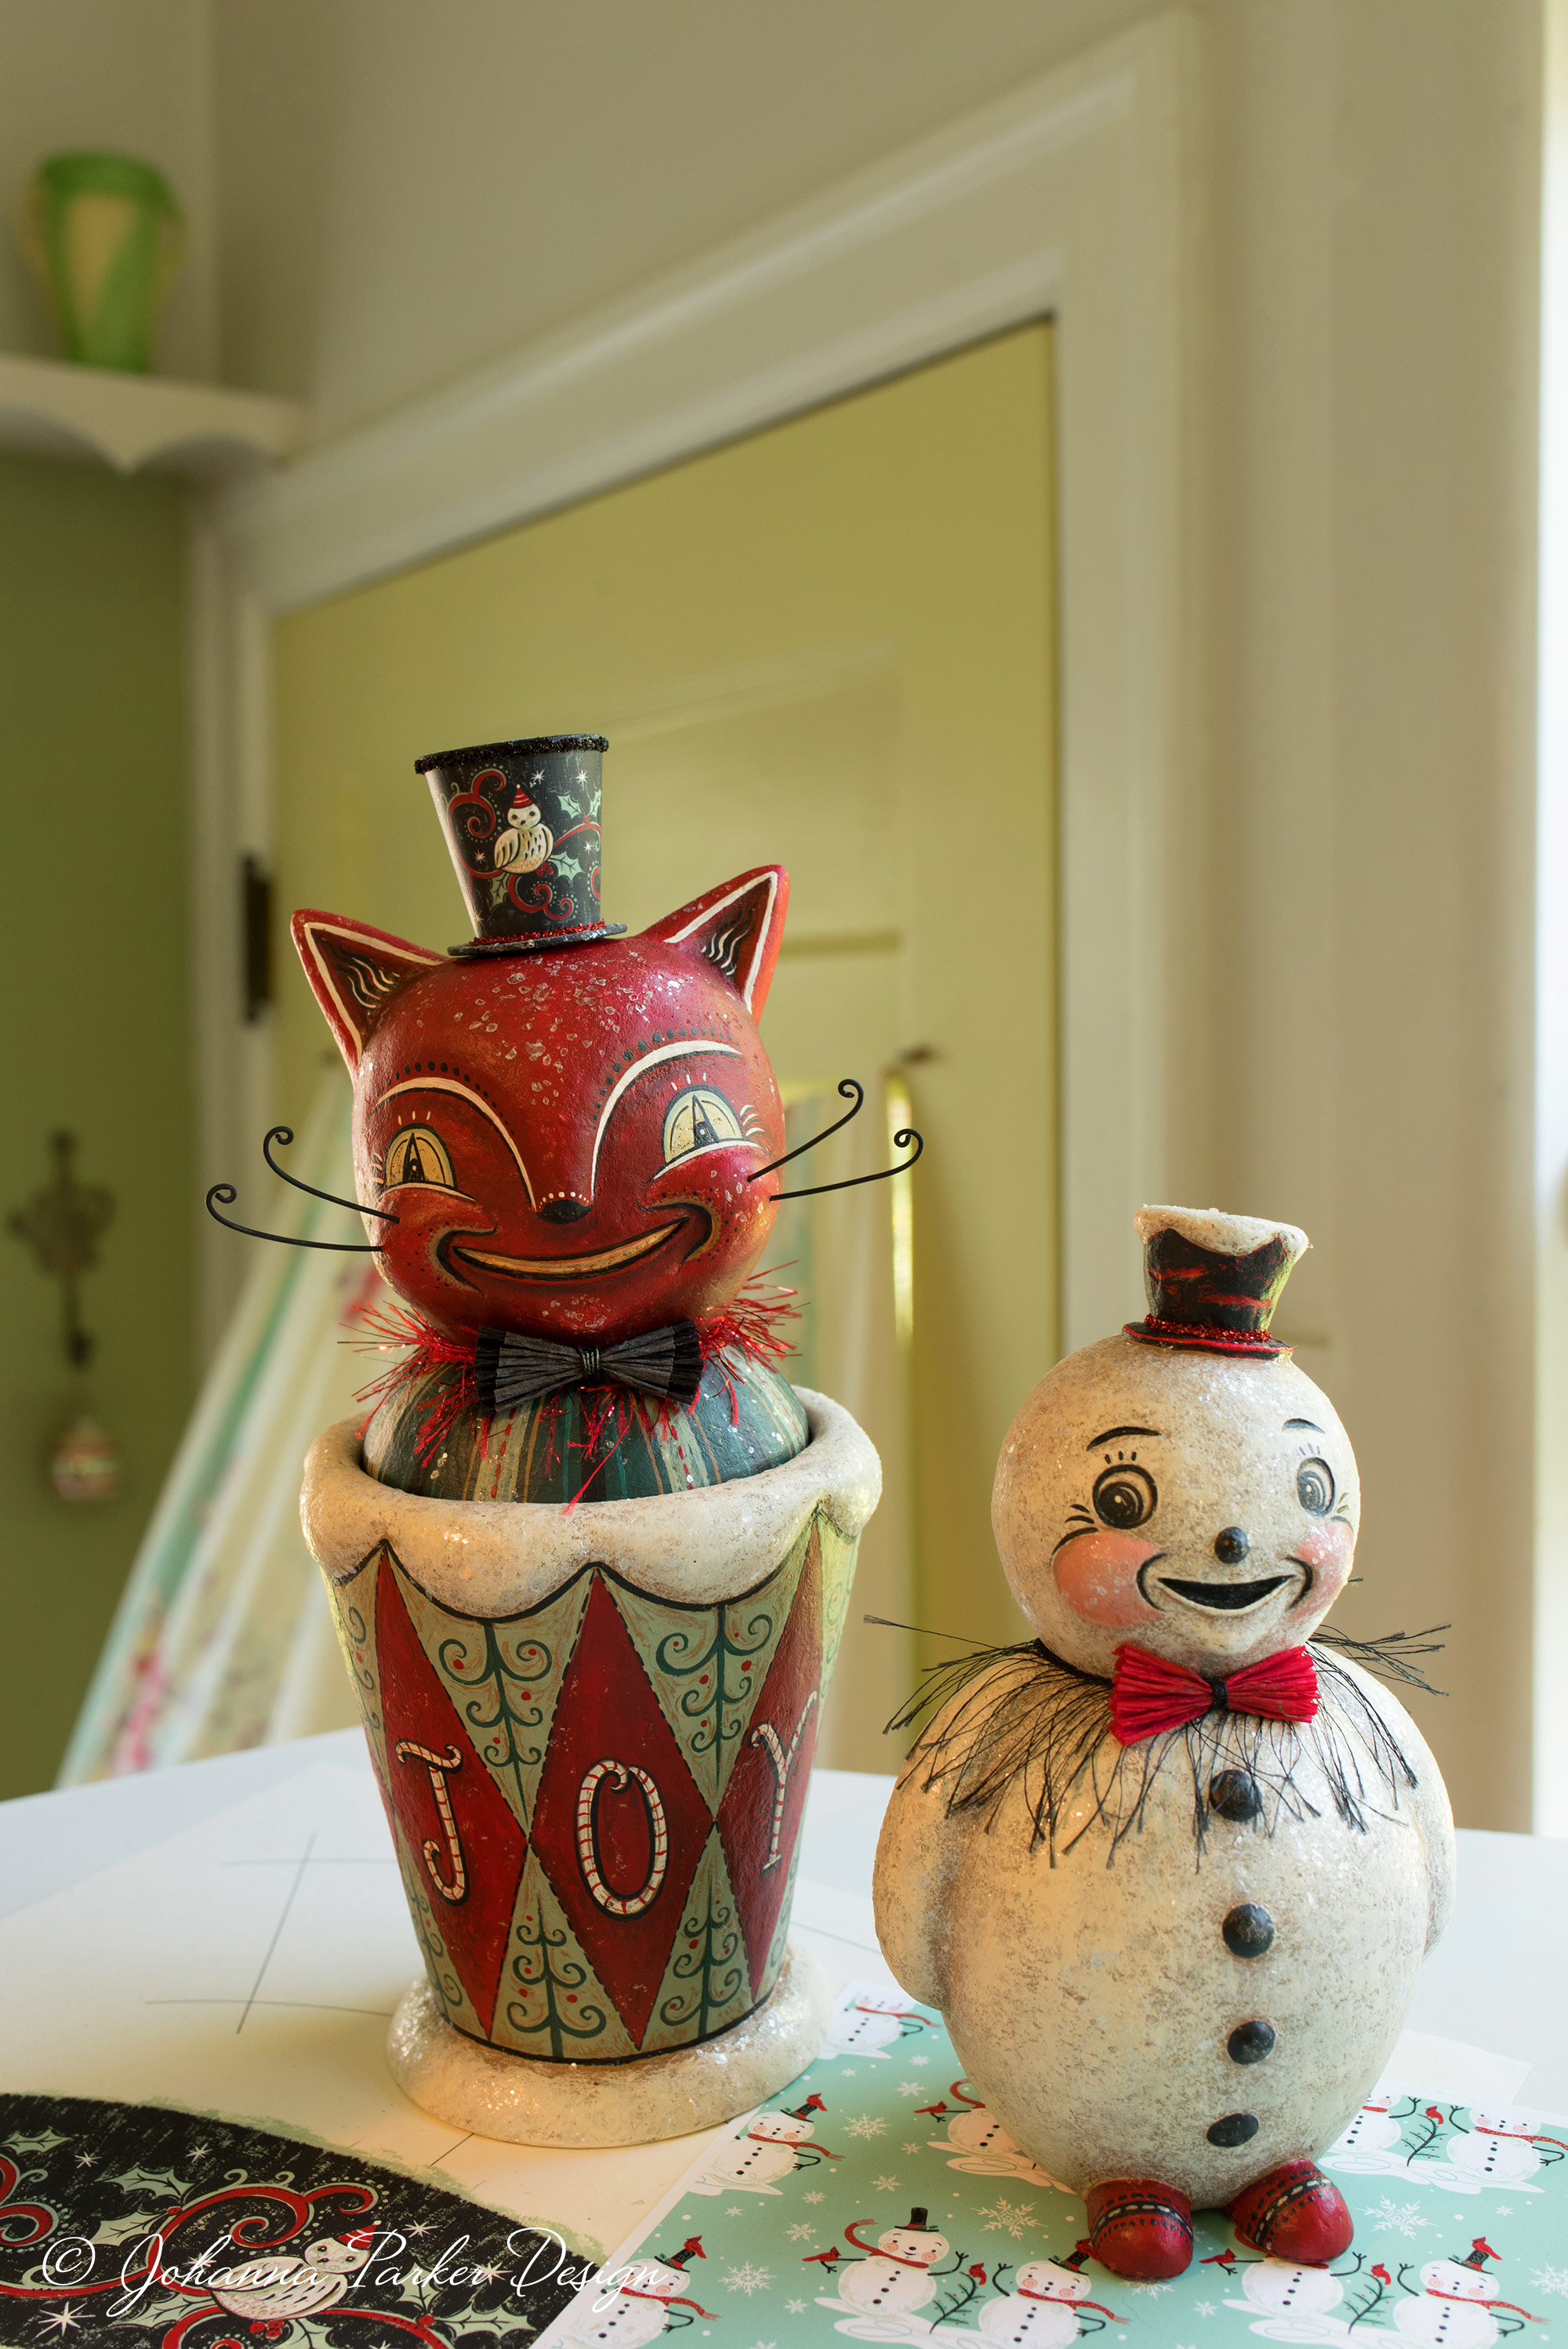 We chose this mischievous pair of holiday folk art characters, a rare,grinning red cat candy container and a standing snowman, to accompany me in my portrait.